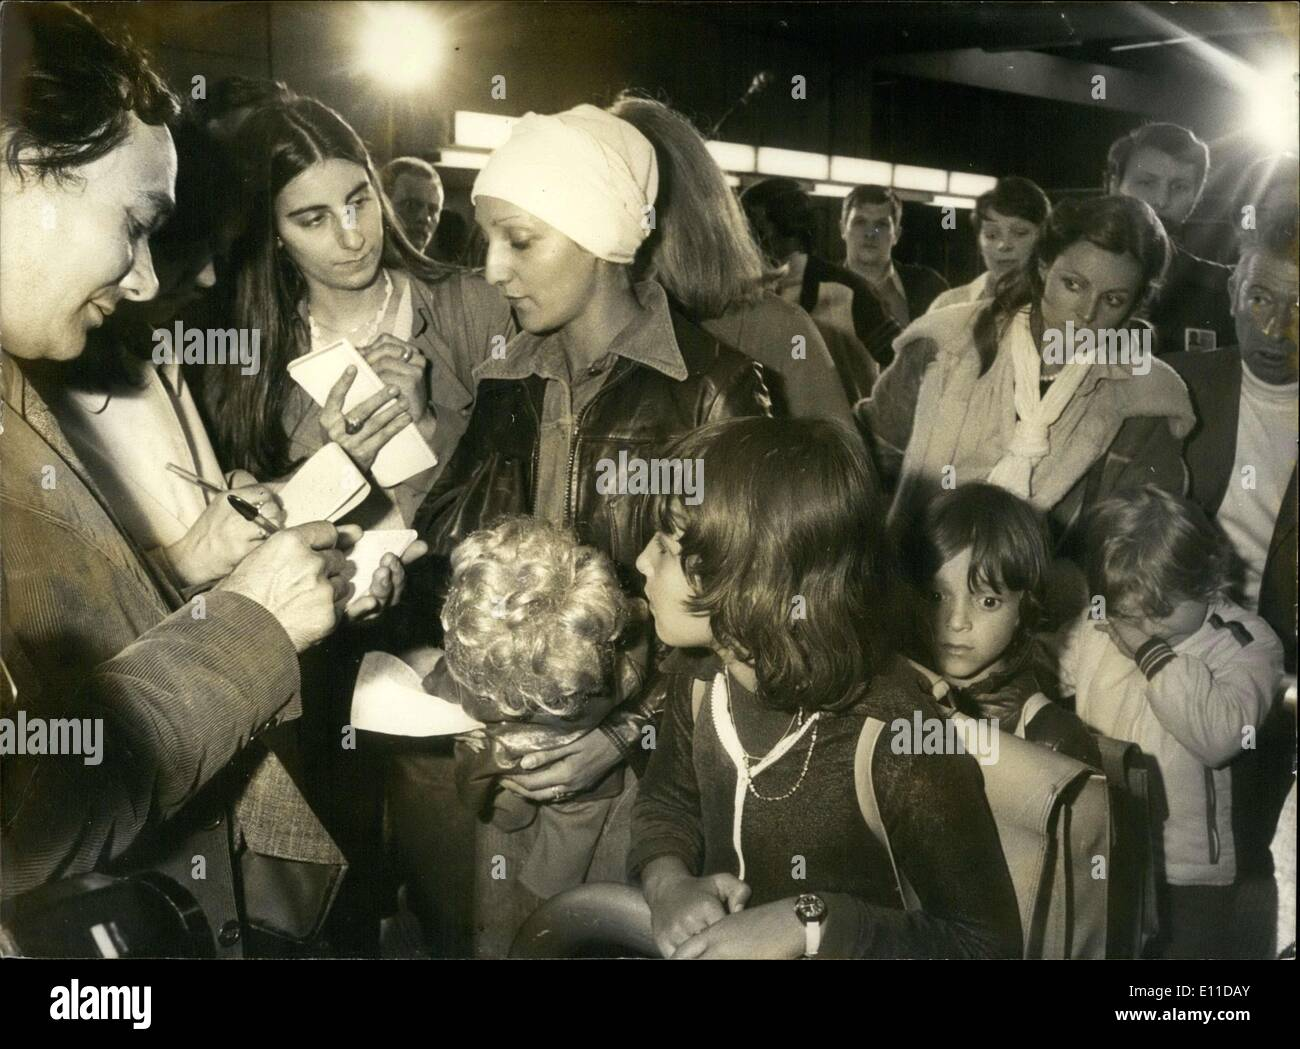 May 04, 1977 - 157 French people, for the most part women and children, evacuated from Zouerate, due to an attack by the Polisario Front. They arrived at Roissy airport last night on board a CD8 that was specially chartered by the National Industrial and Mining Company for the repatriates of Mauritania. - Stock Image